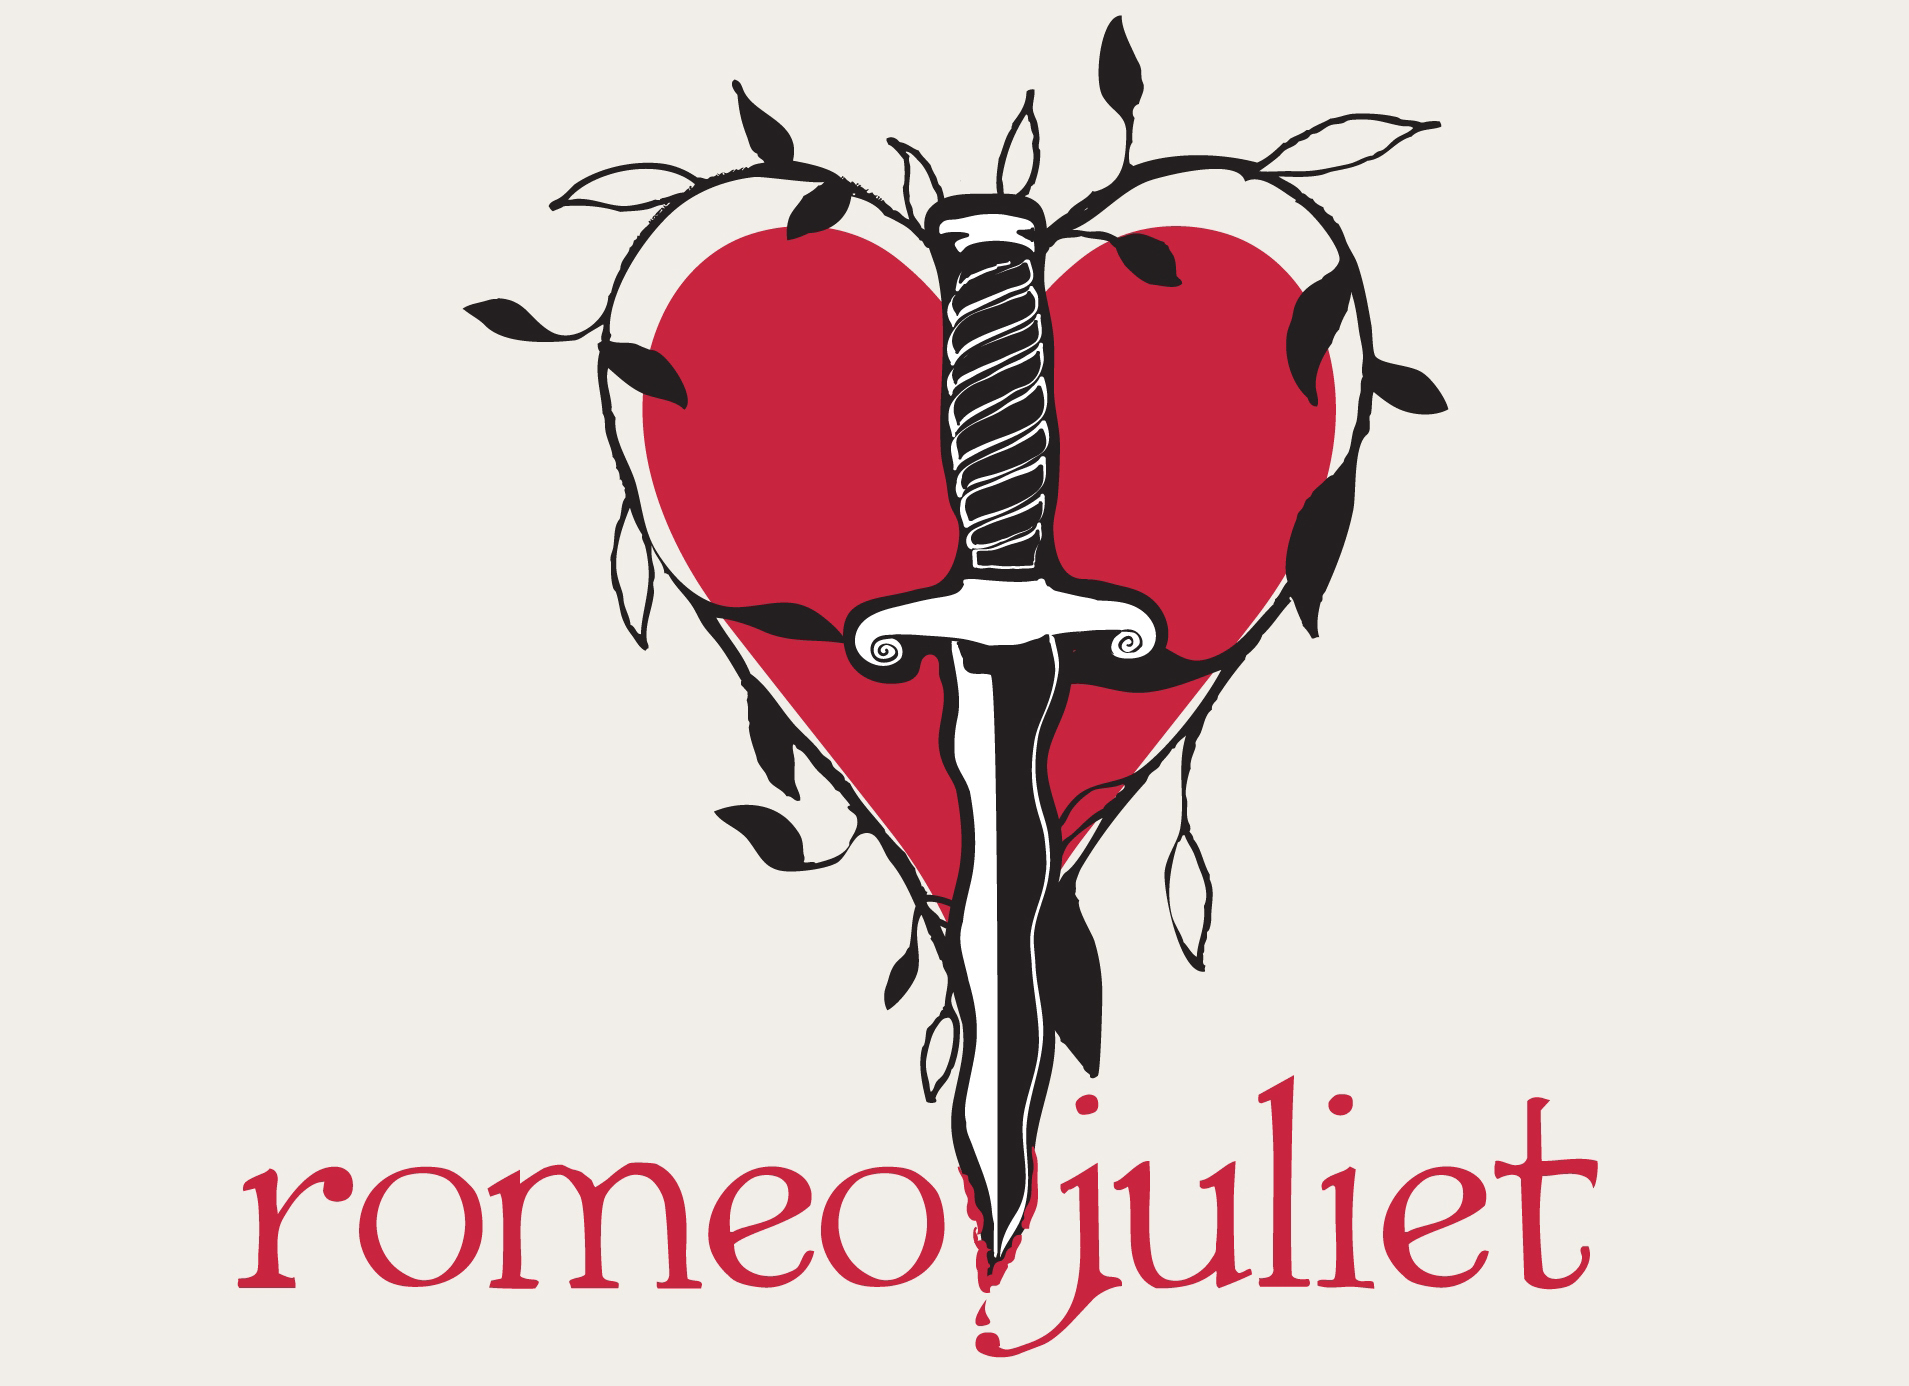 to kill a mockingbird and romeo and juliet What events were foreshadowed in to kill a mockingbird  scene 1 of romeo and juliet ,  types of diction in act 3, scene 1 of romeo and juliet.